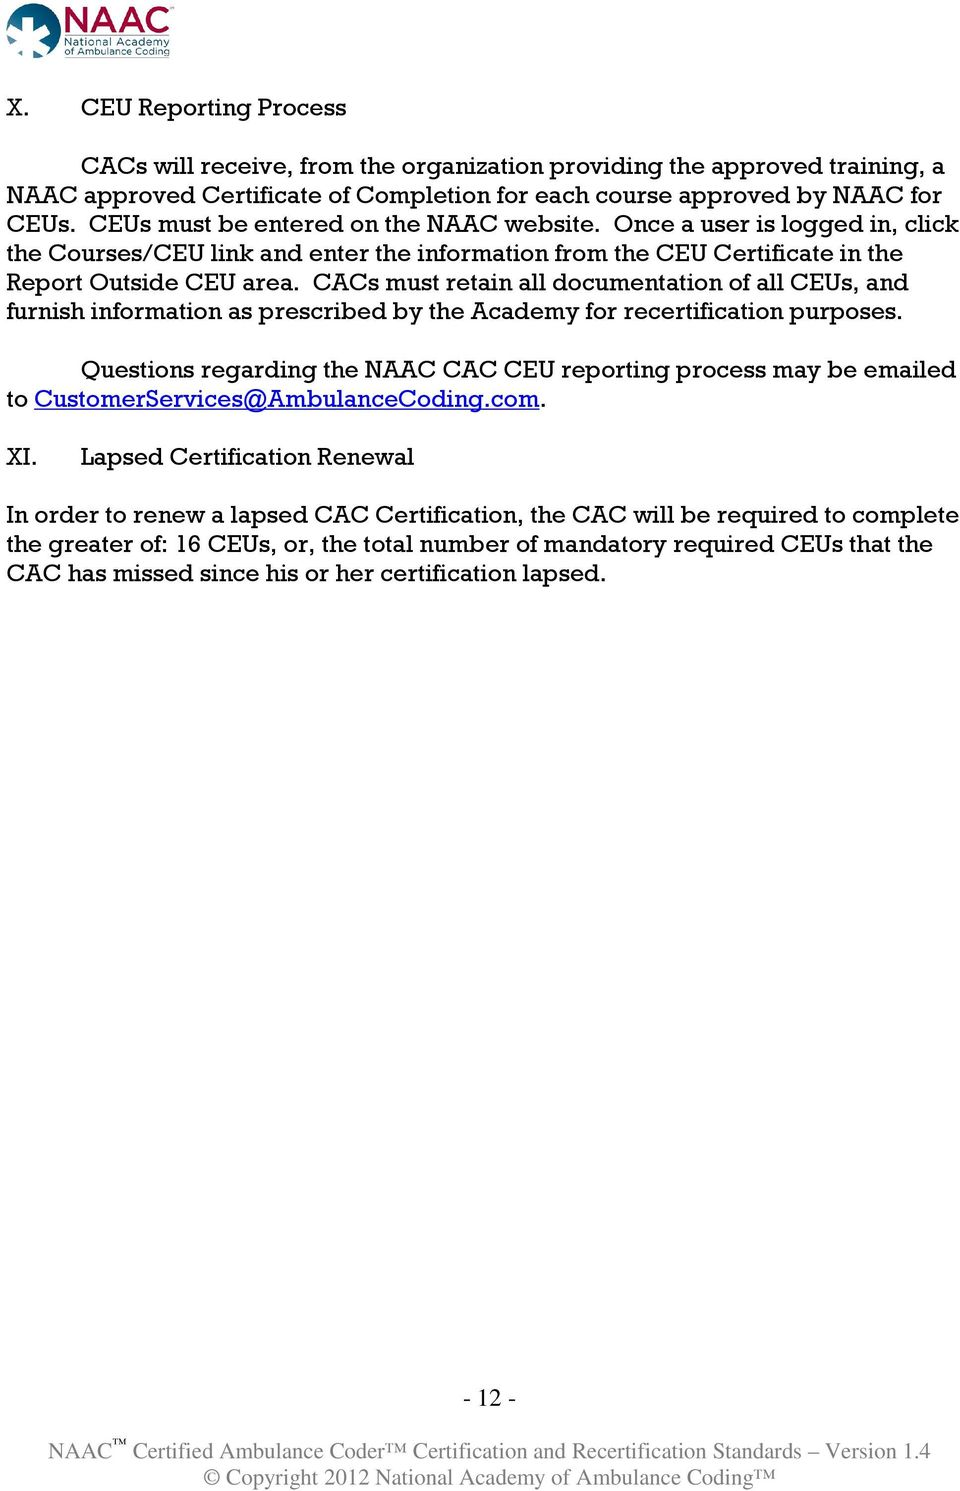 Certified Ambulance Coder Certification And Recertification